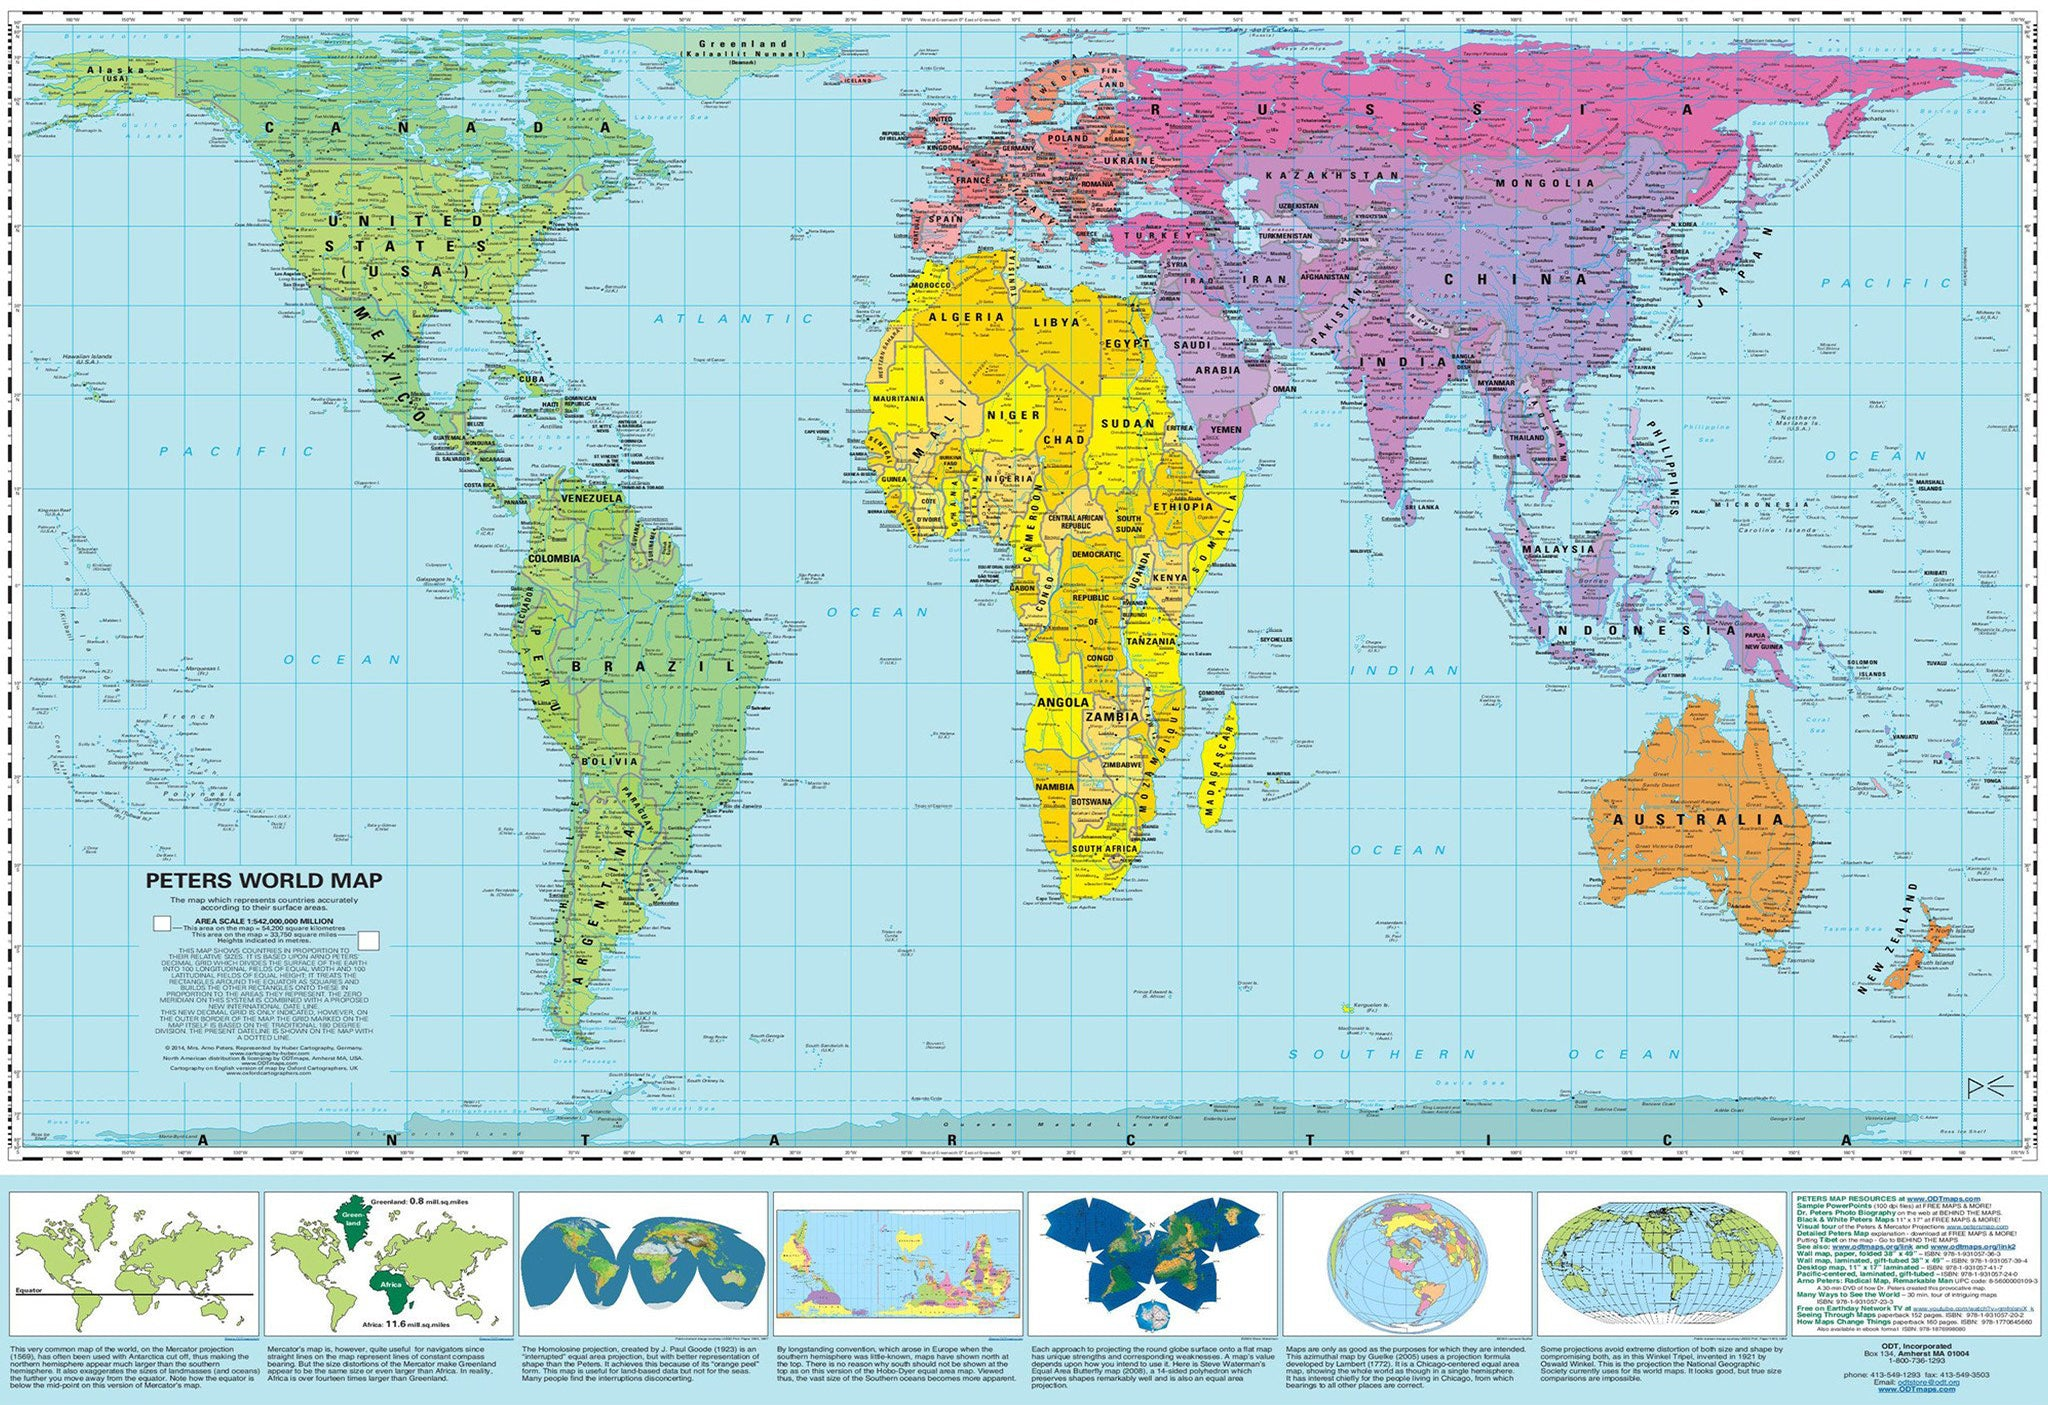 Gall-Peters Equal Area World Map 1270 x 1000mm Paper Folded